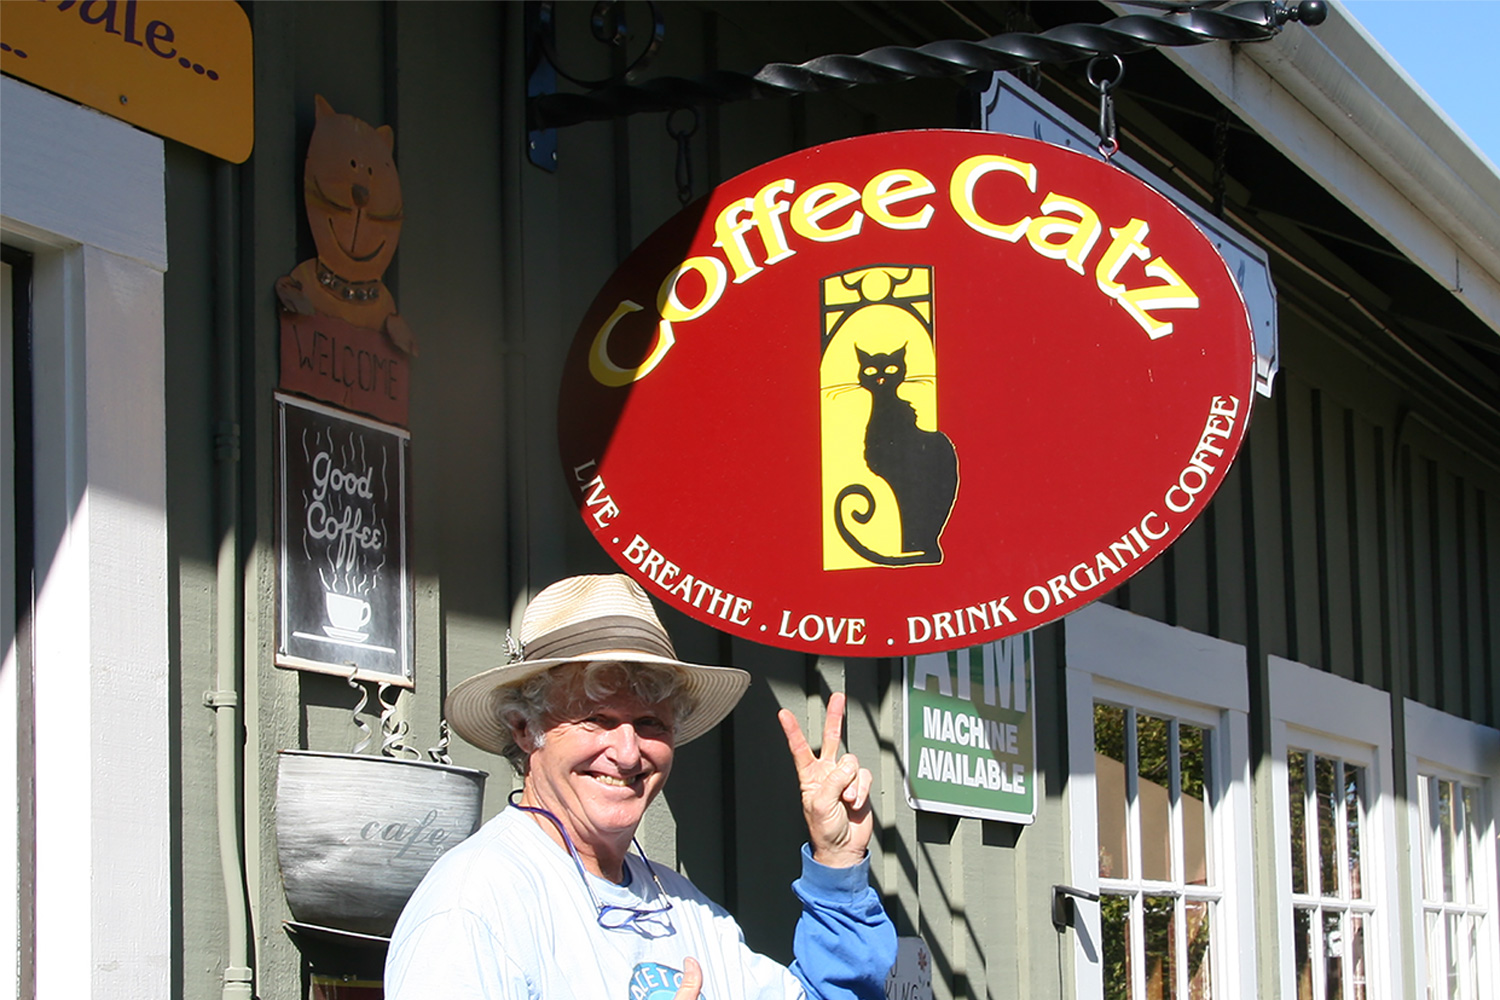 coffee-cats.jpg